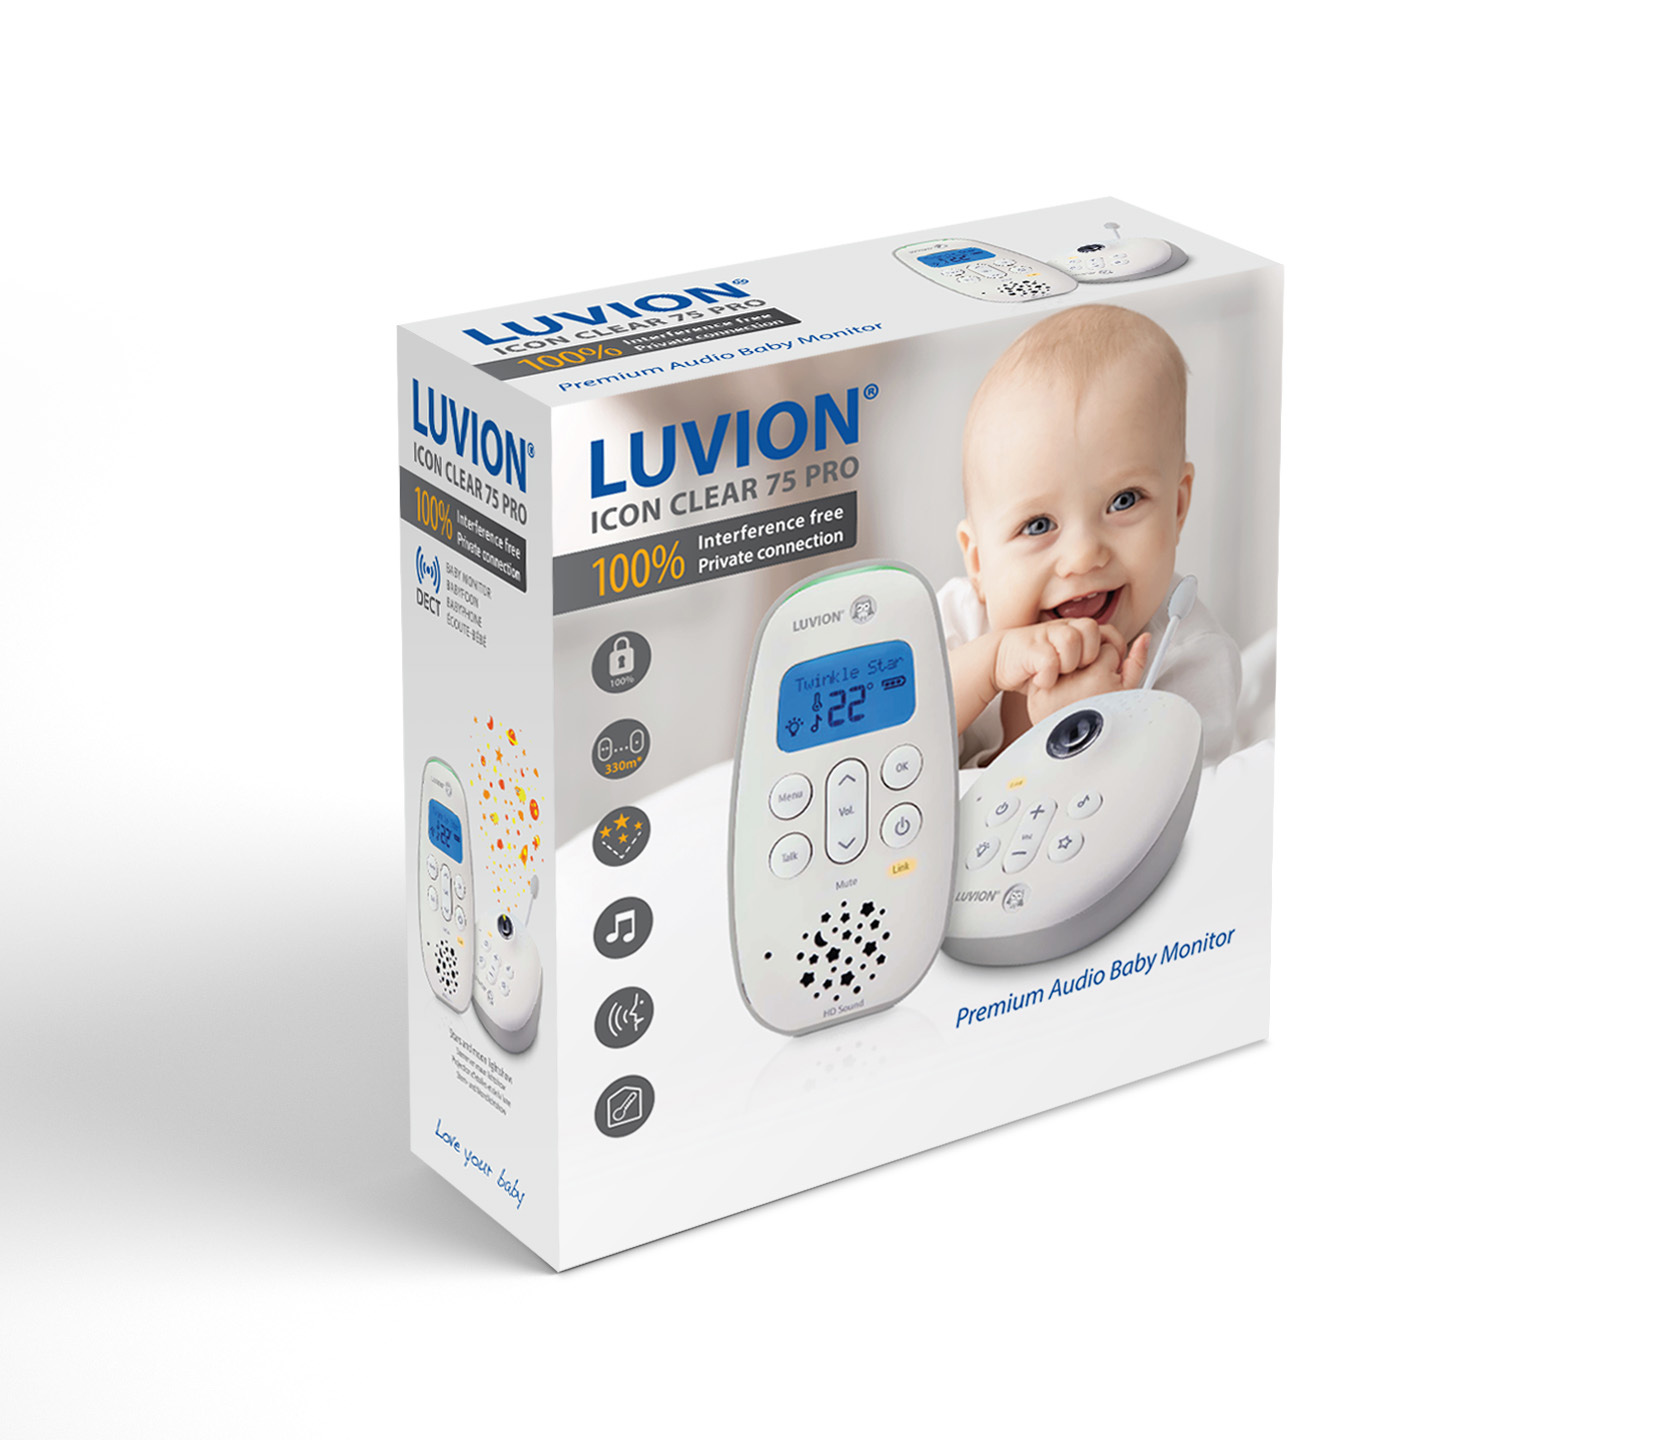 Luvion Icon Clear 75 dect babyfoon verpakking